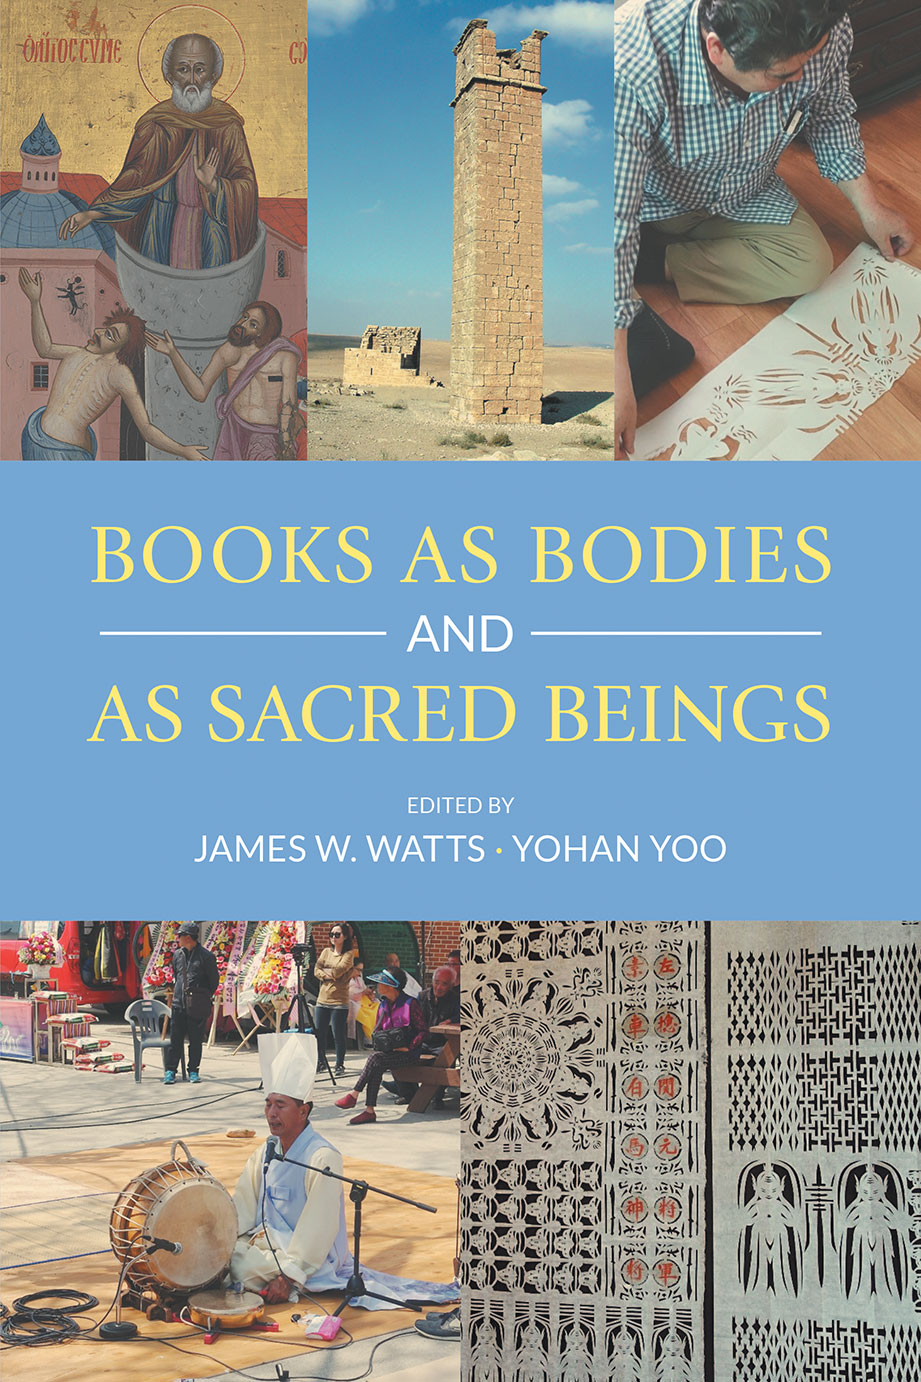 Books as Bodies and as Sacred Beings